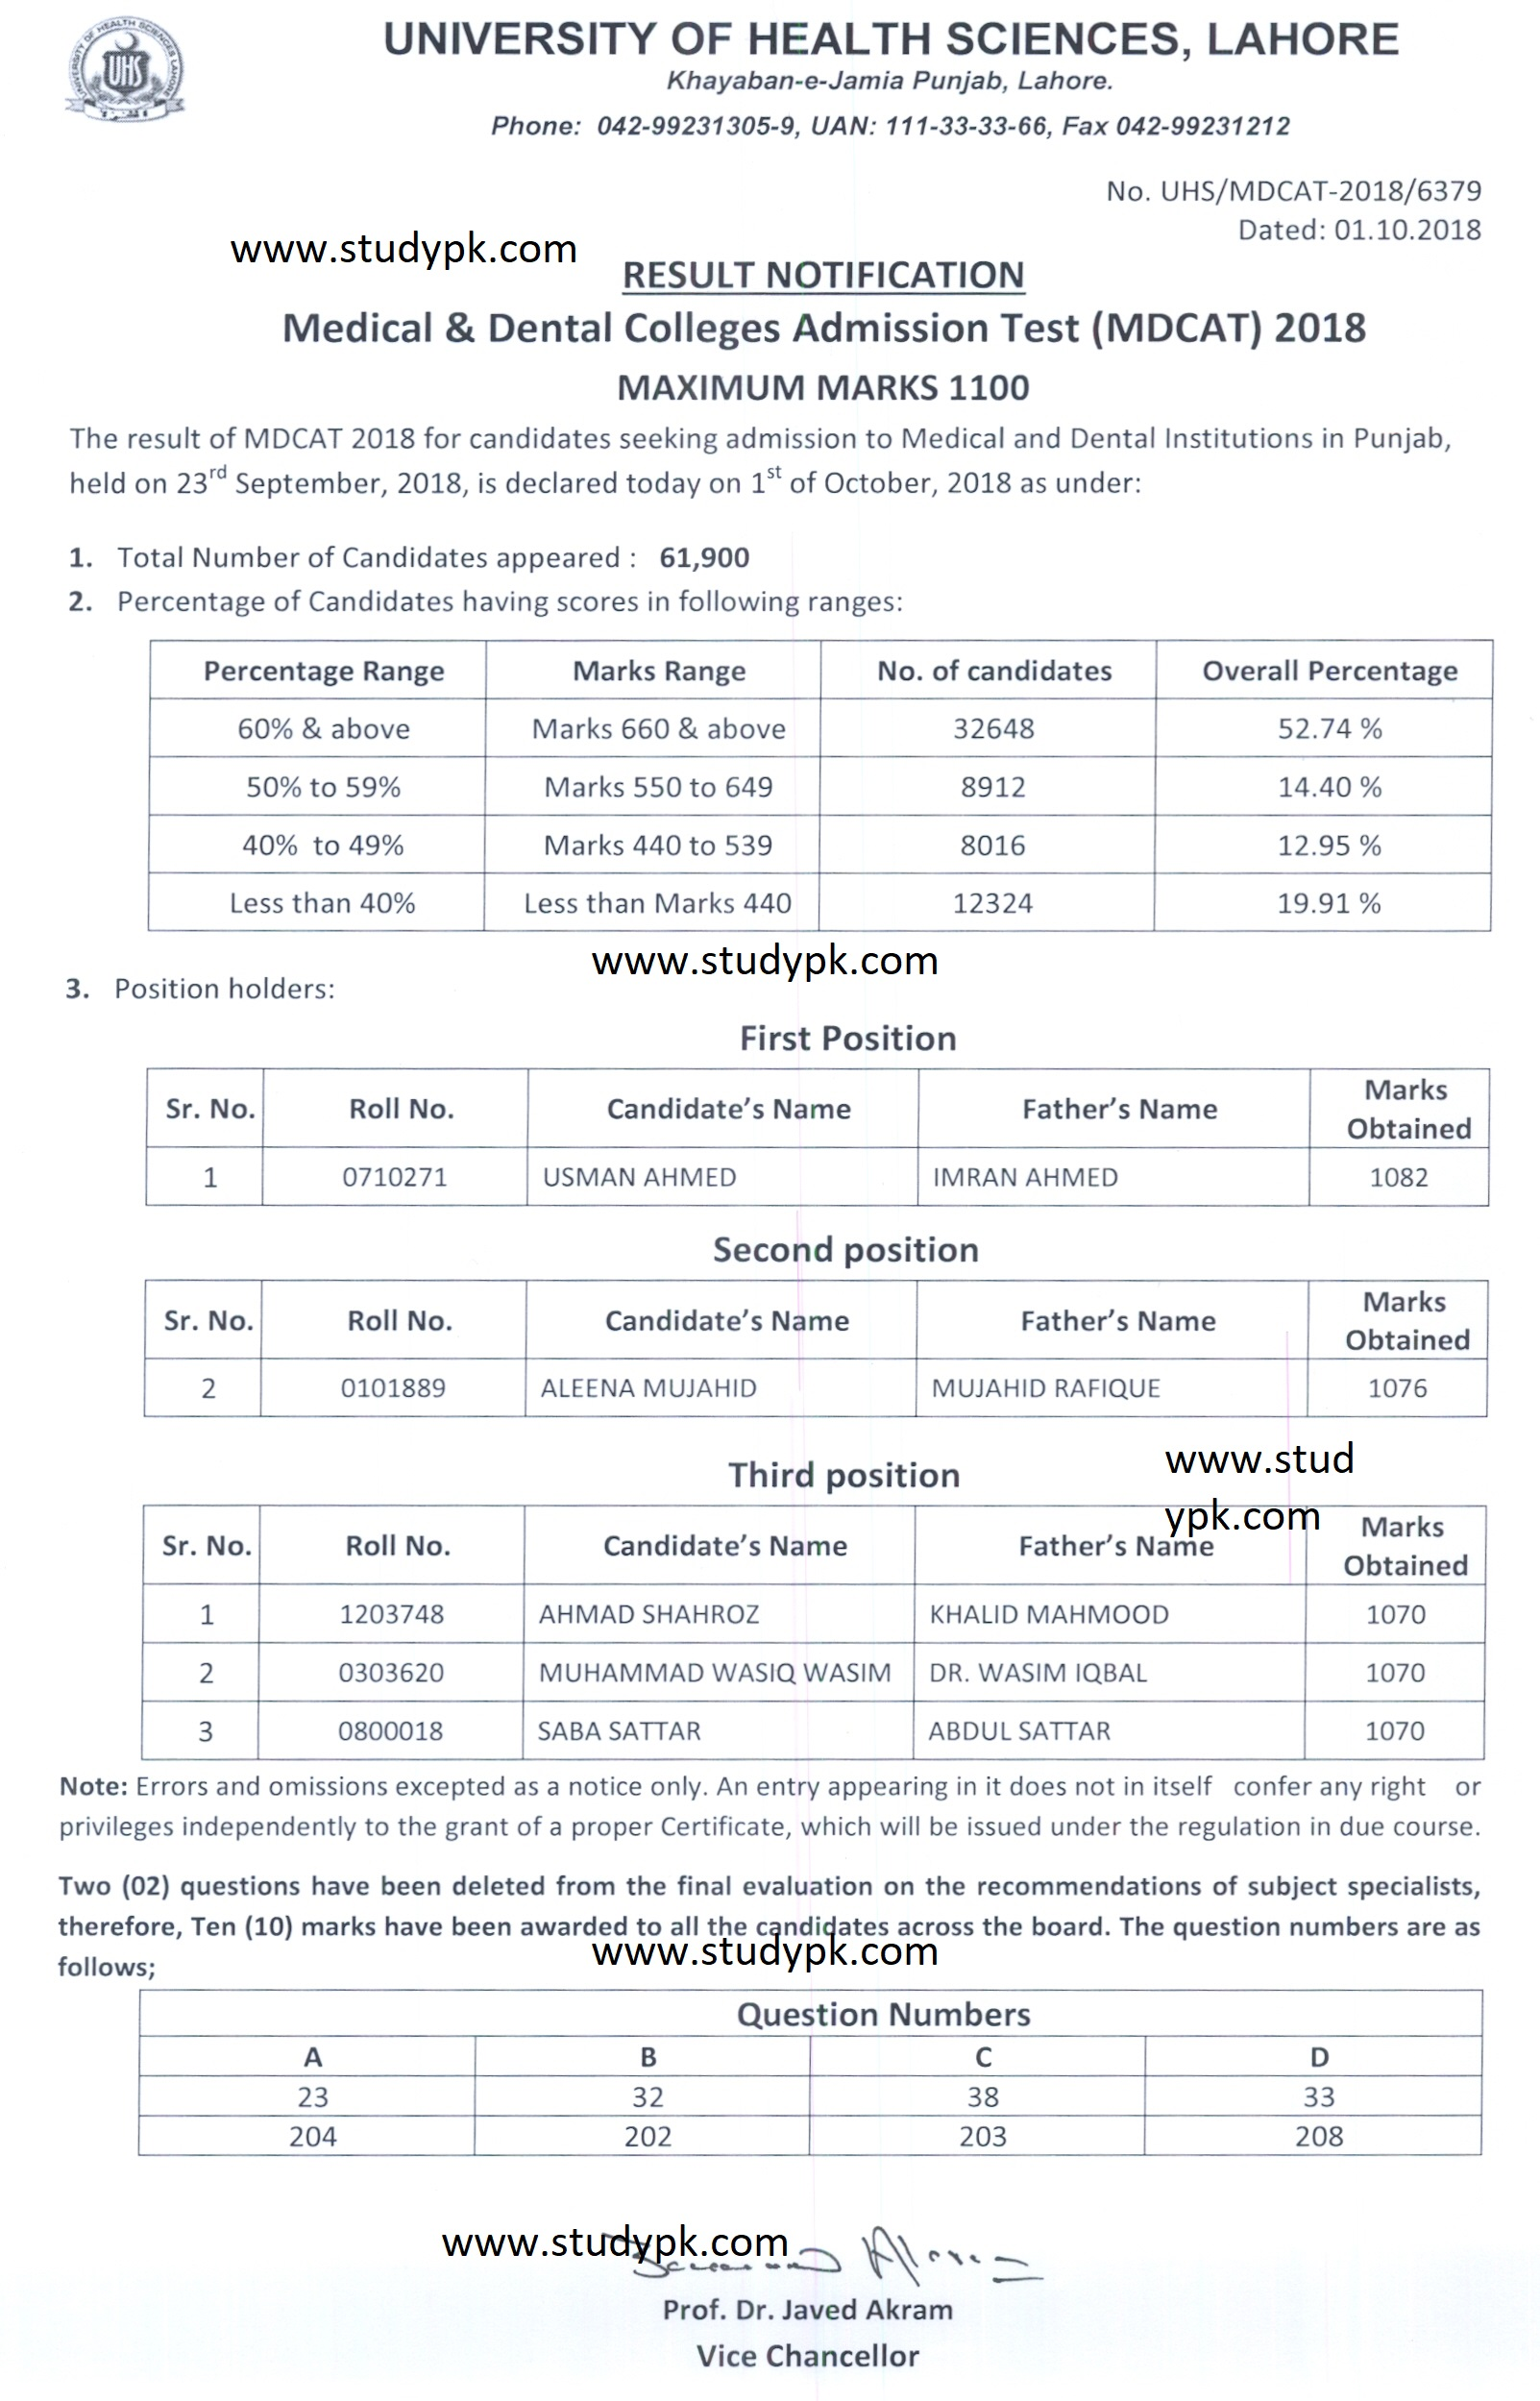 UHS MDCAT Result 2018